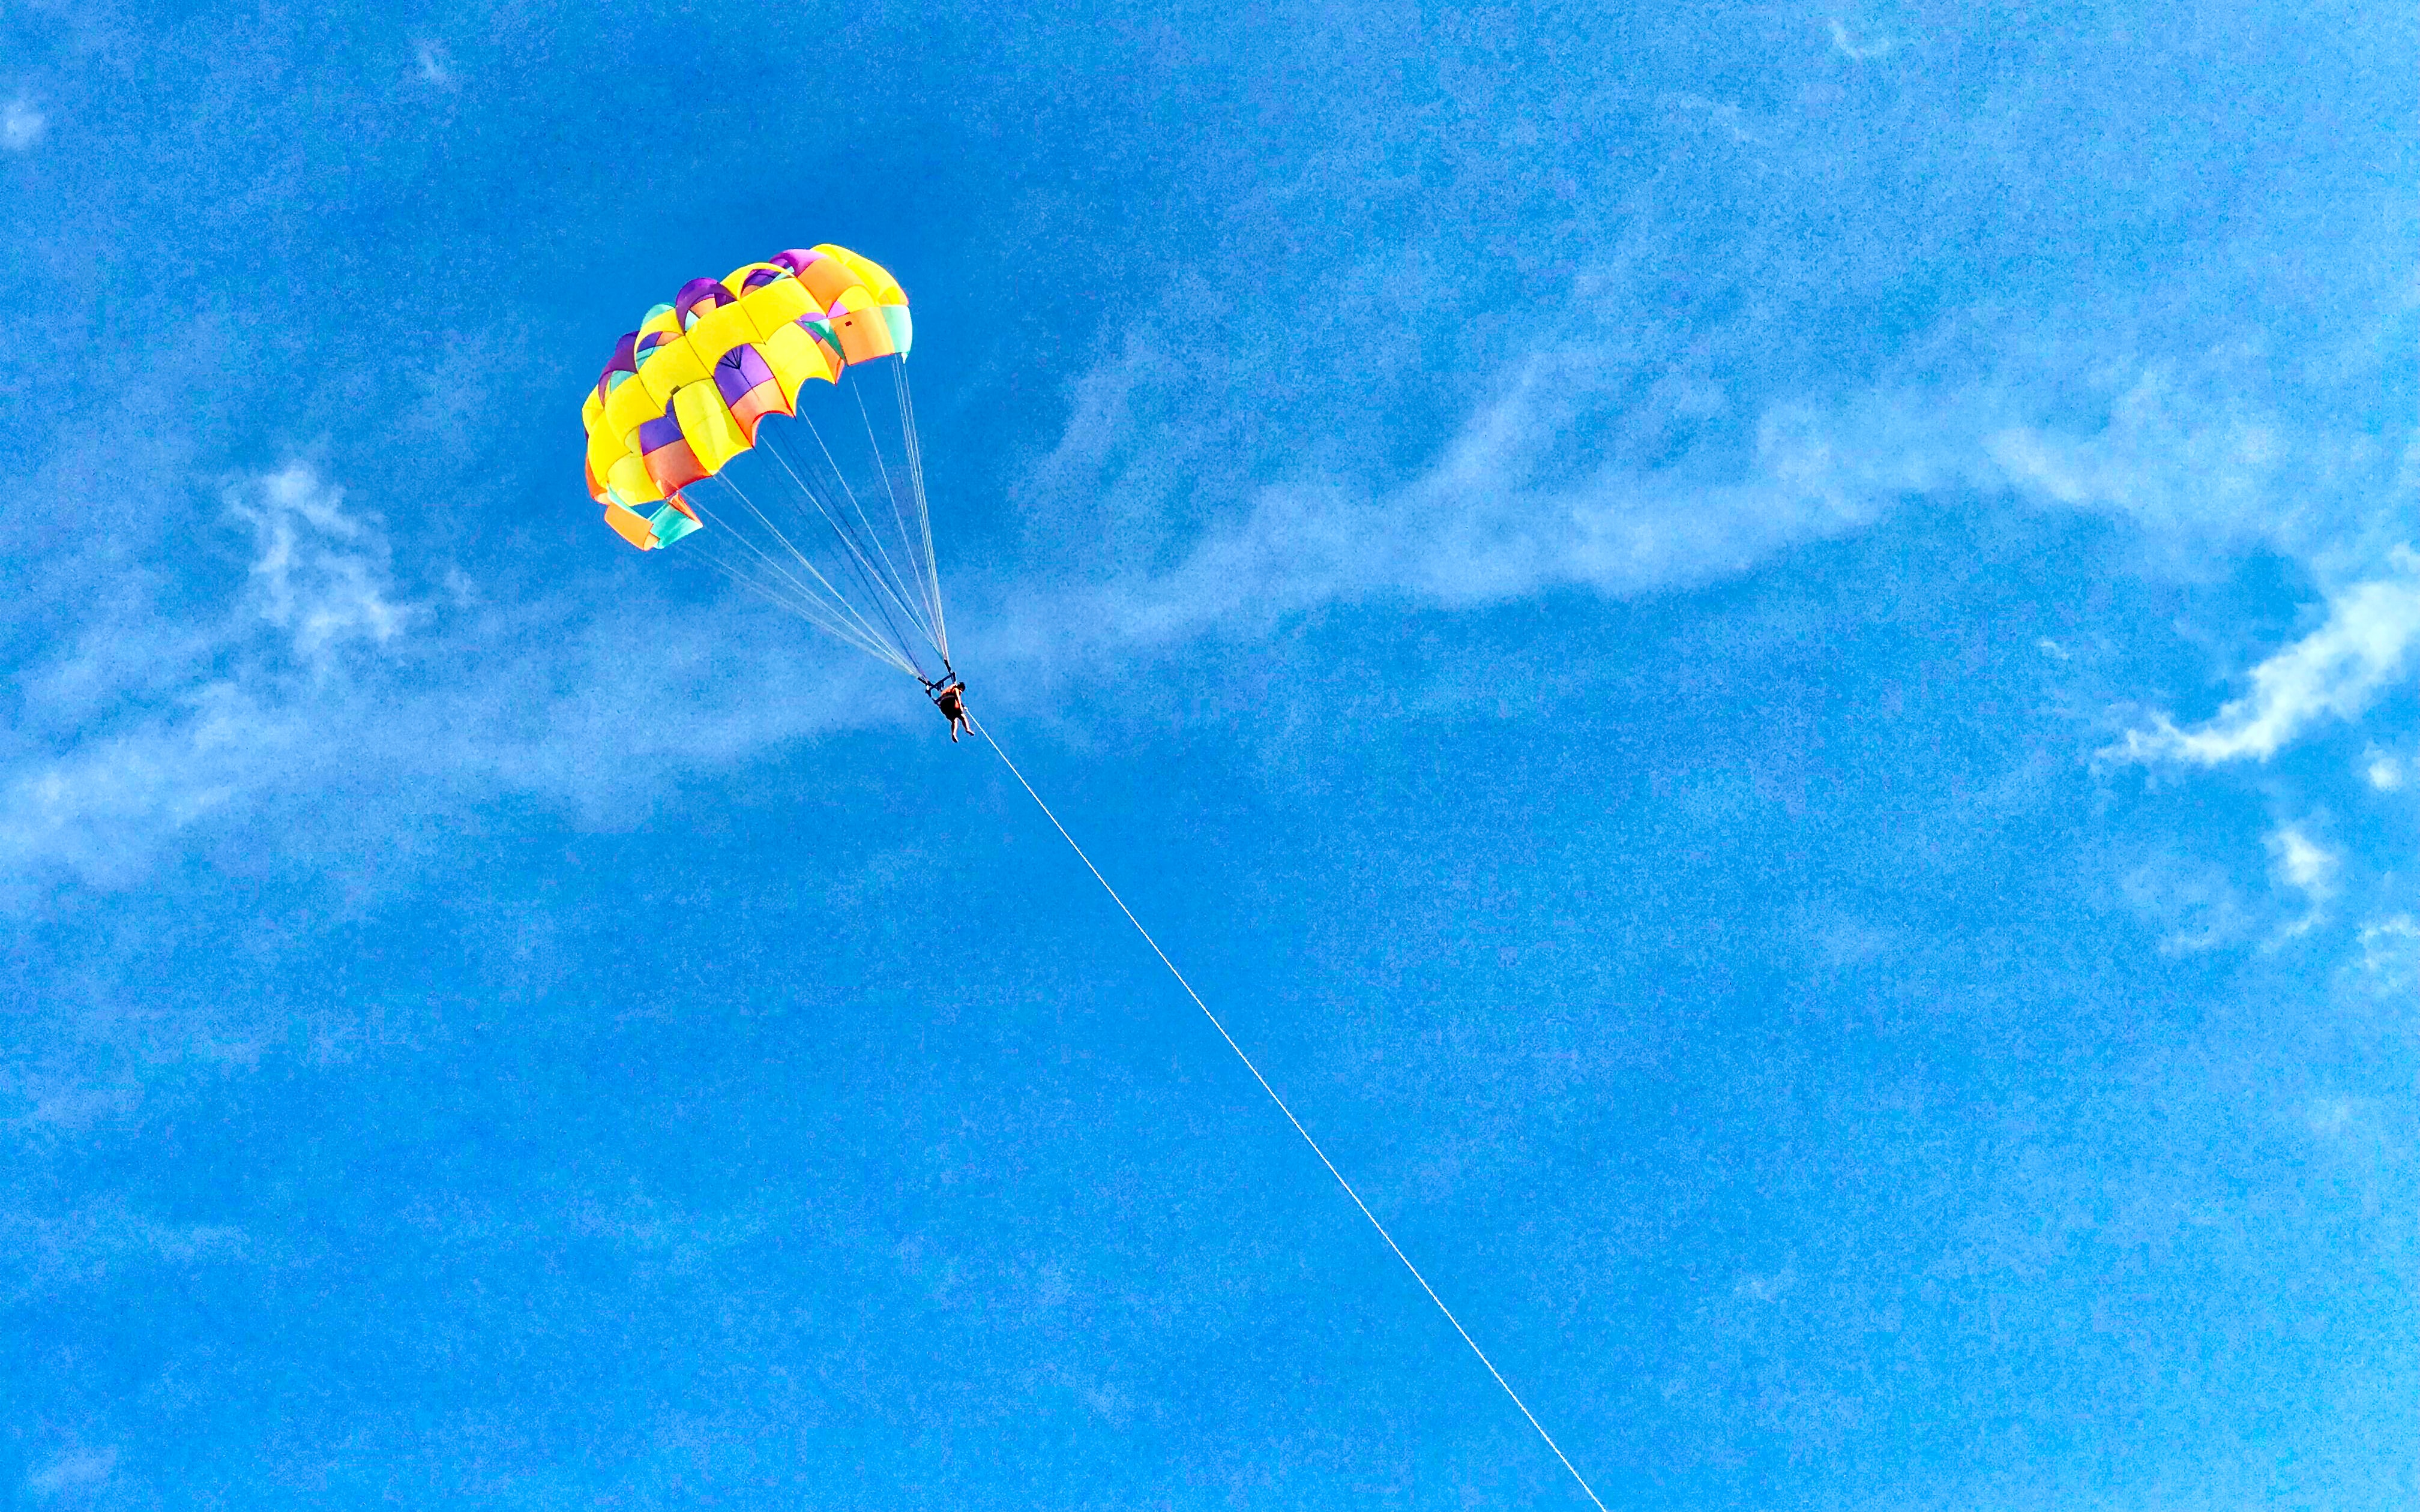 person paragliding outdoors